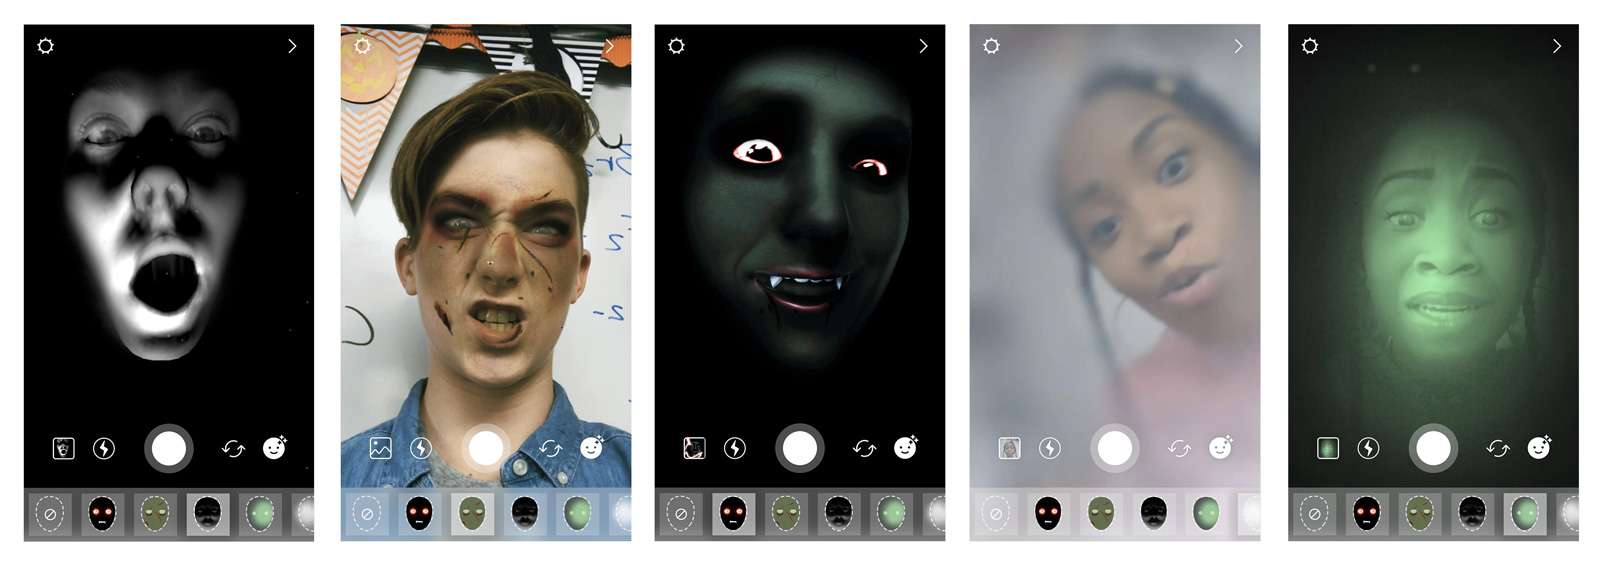 Instagram is adding new features for Halloween.